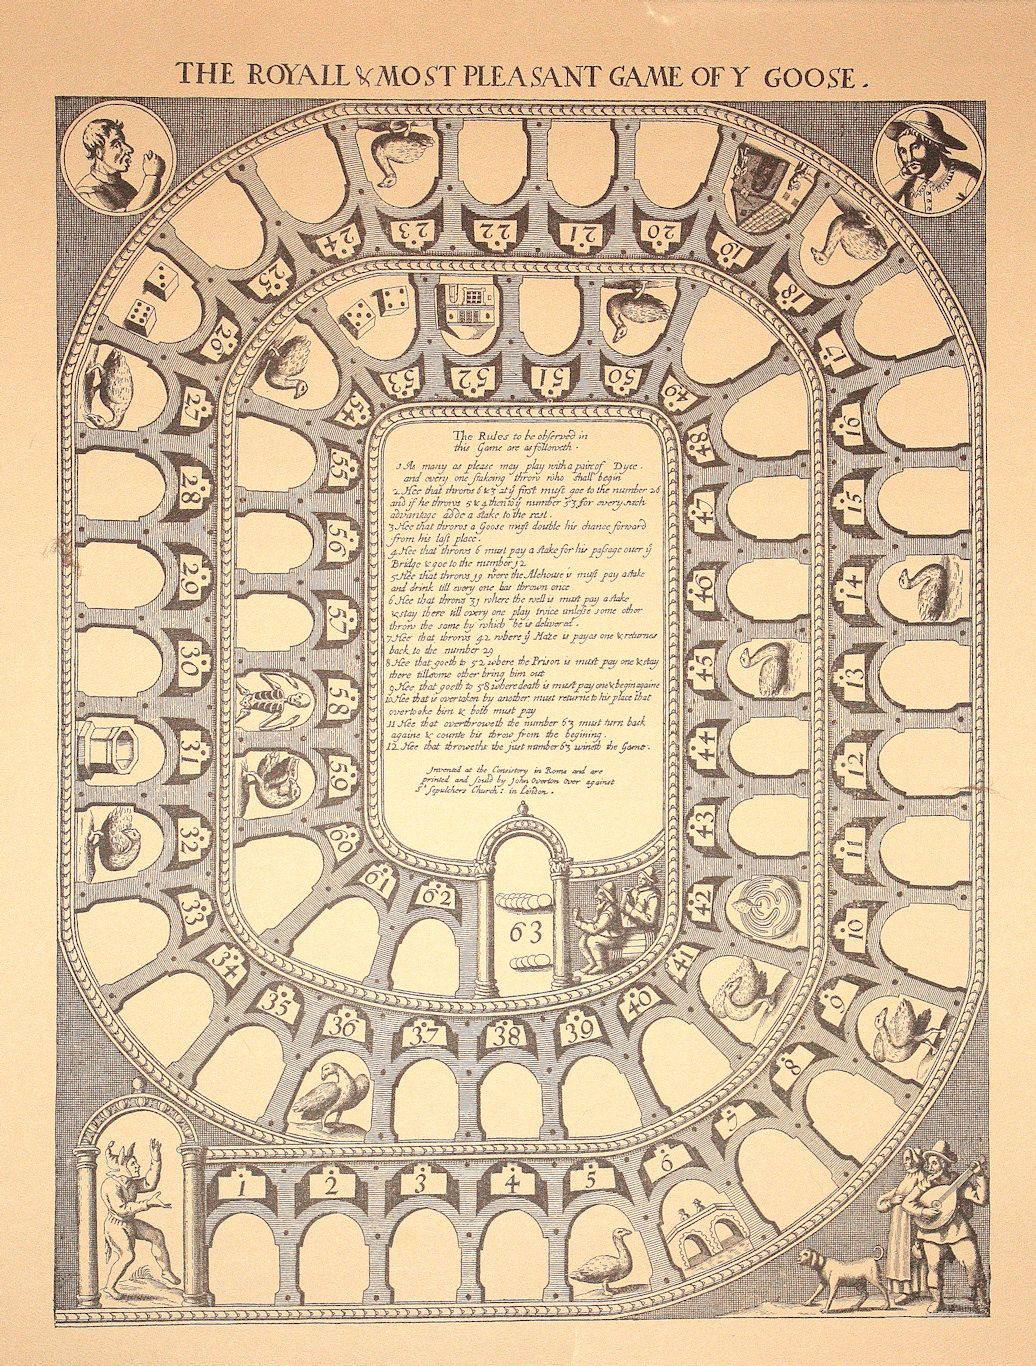 The Royal Game Of Goose This Was The Most Popular Board Game Of The 18th Century And Has Been Called The Monopoly Of It Modern Games Board Games Gaming Blog